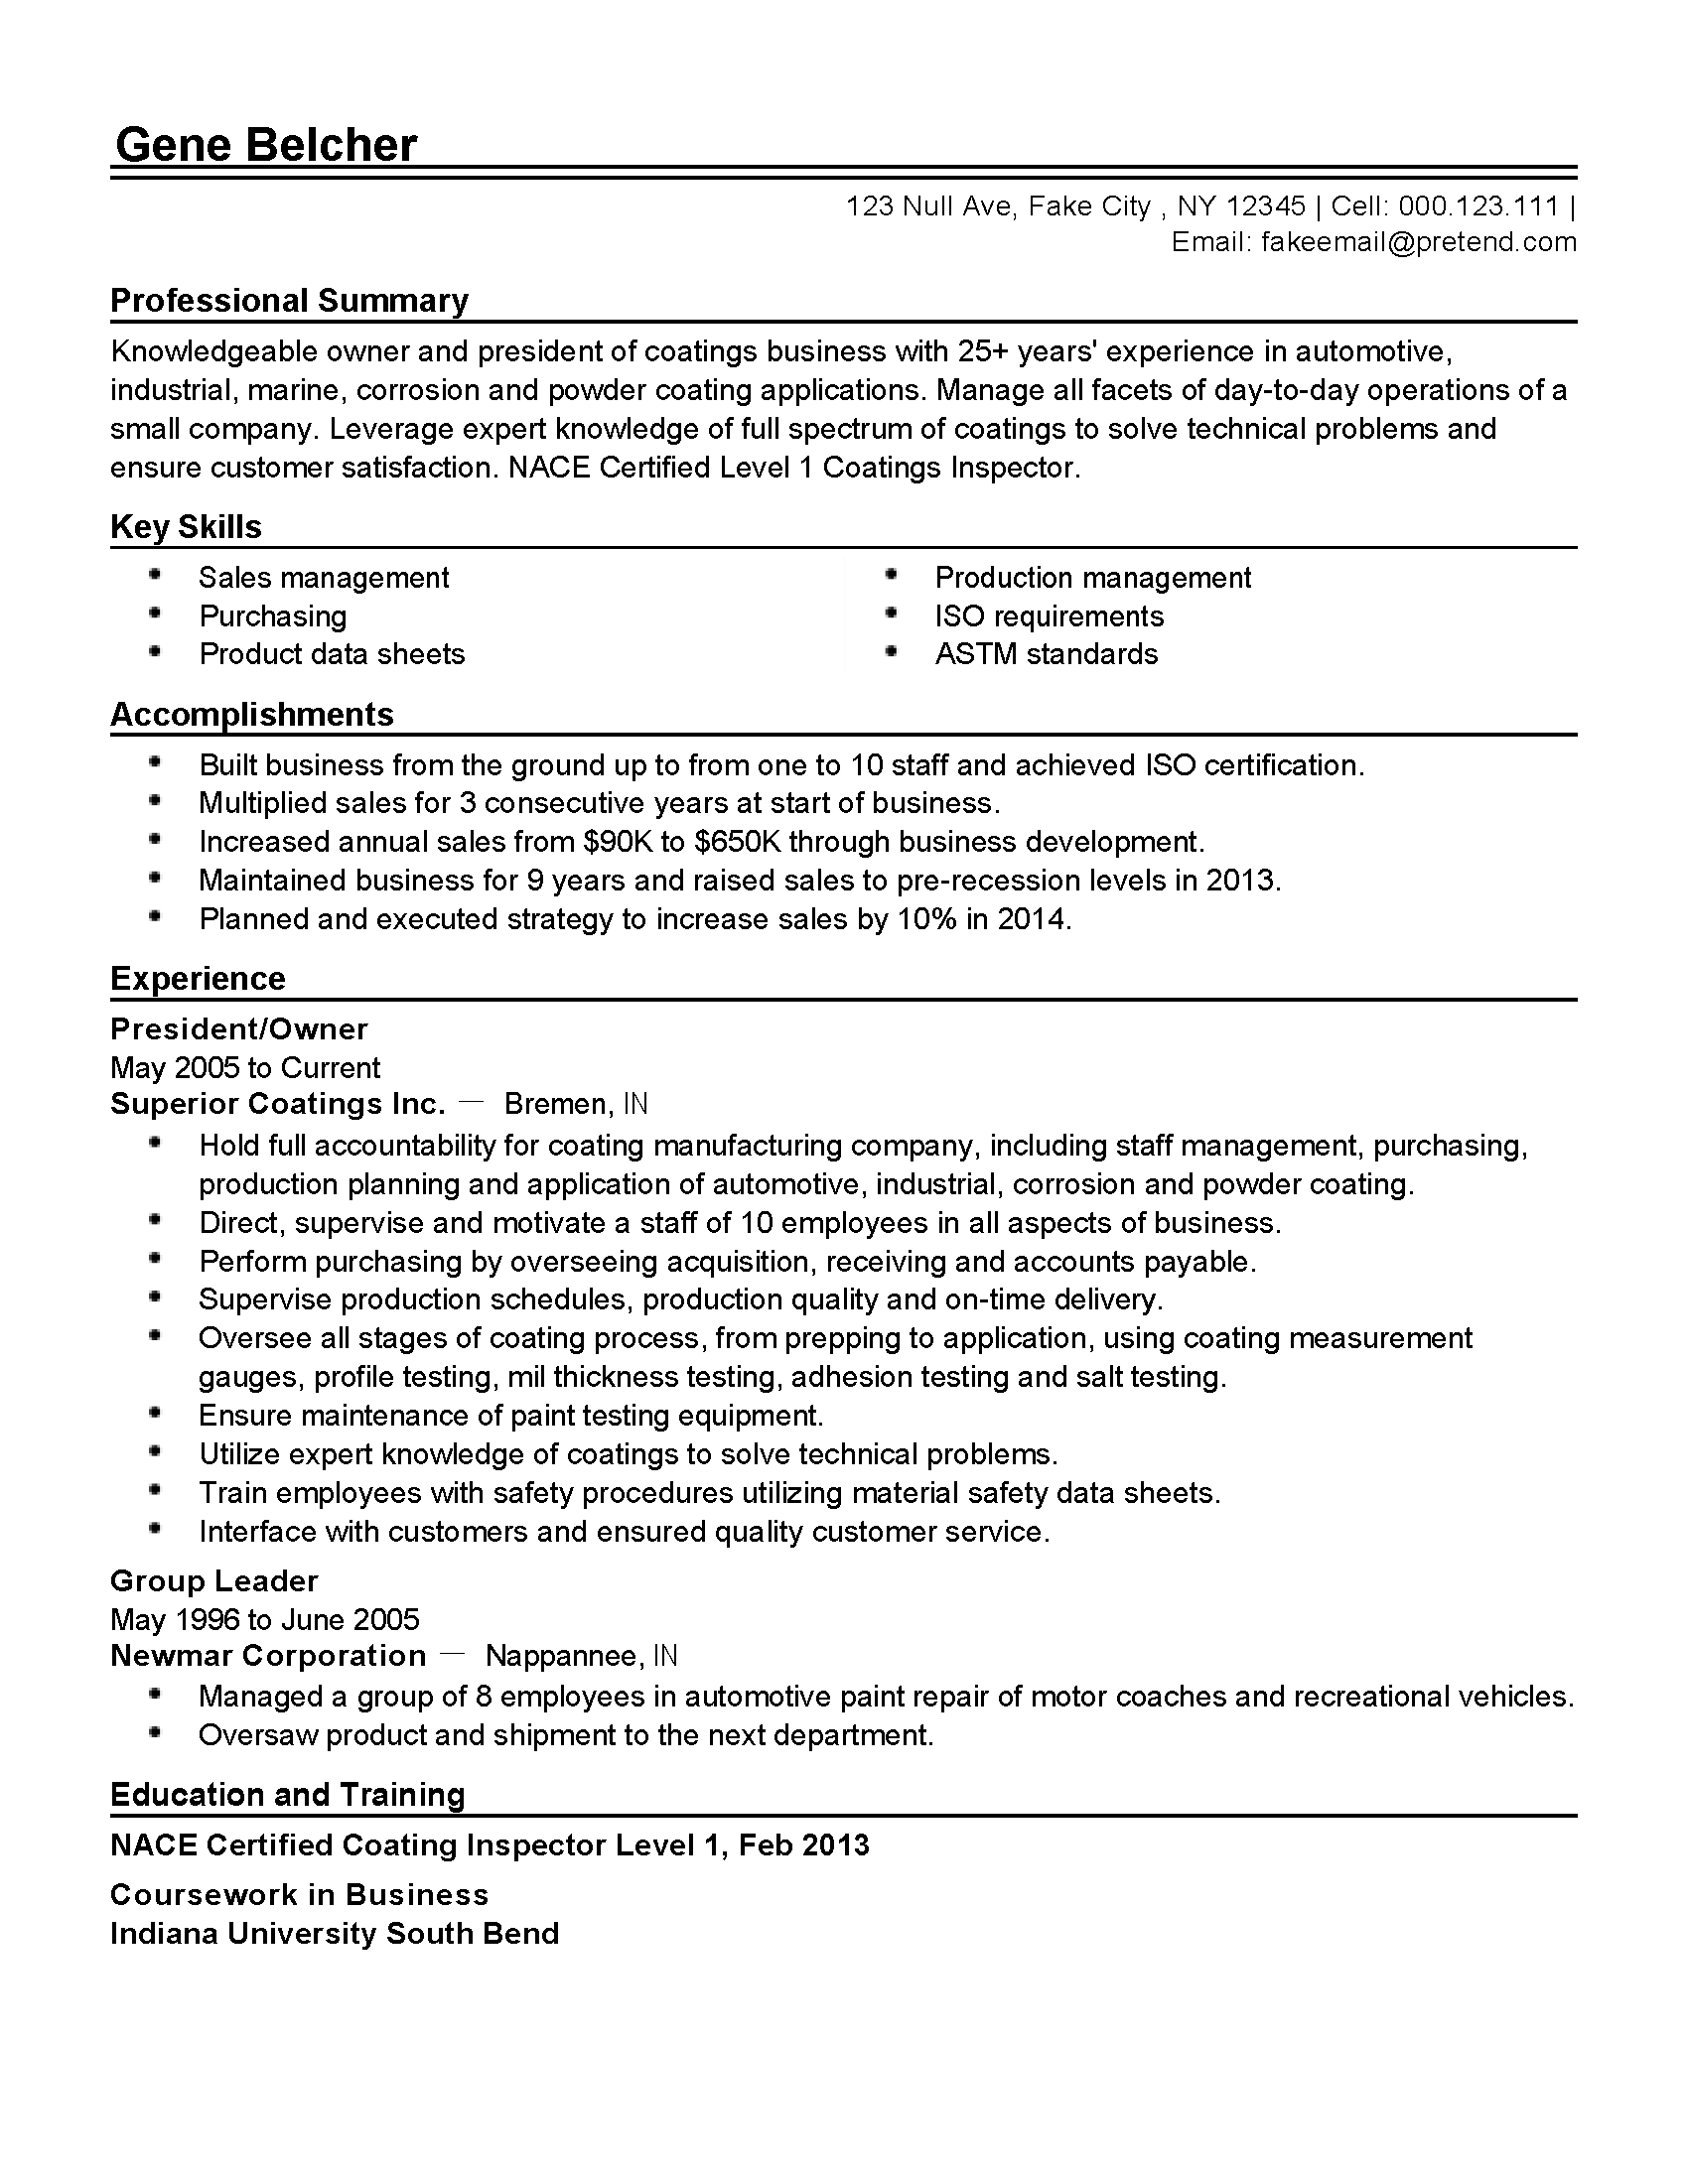 case study examples zs associates online resume builder case study examples zs associates consulting case interview questions answers professional coating application worker templates to